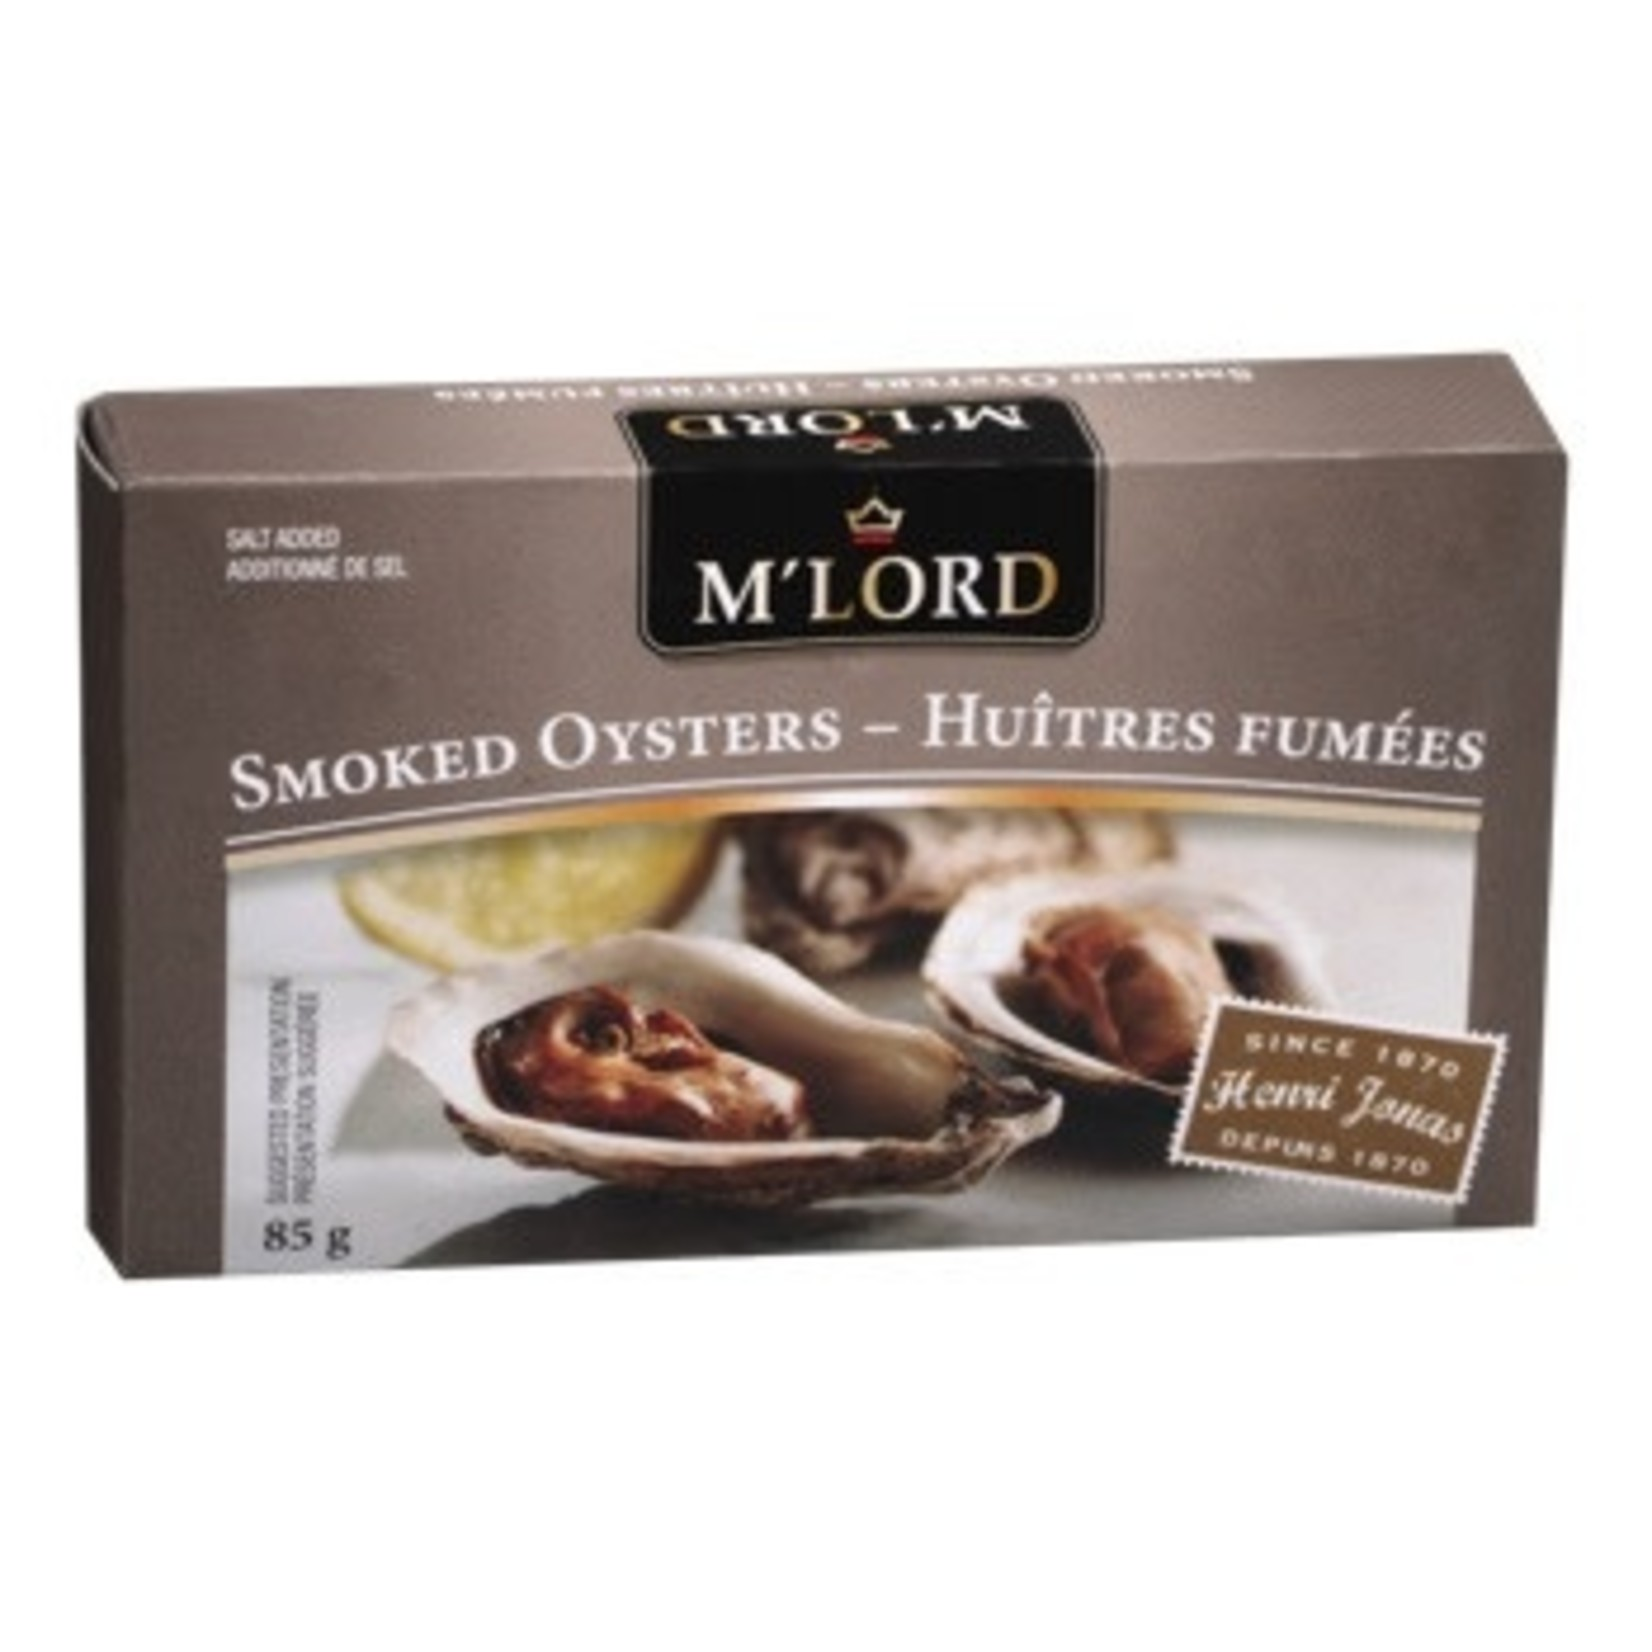 M'Lord Smoked Oysters 85g